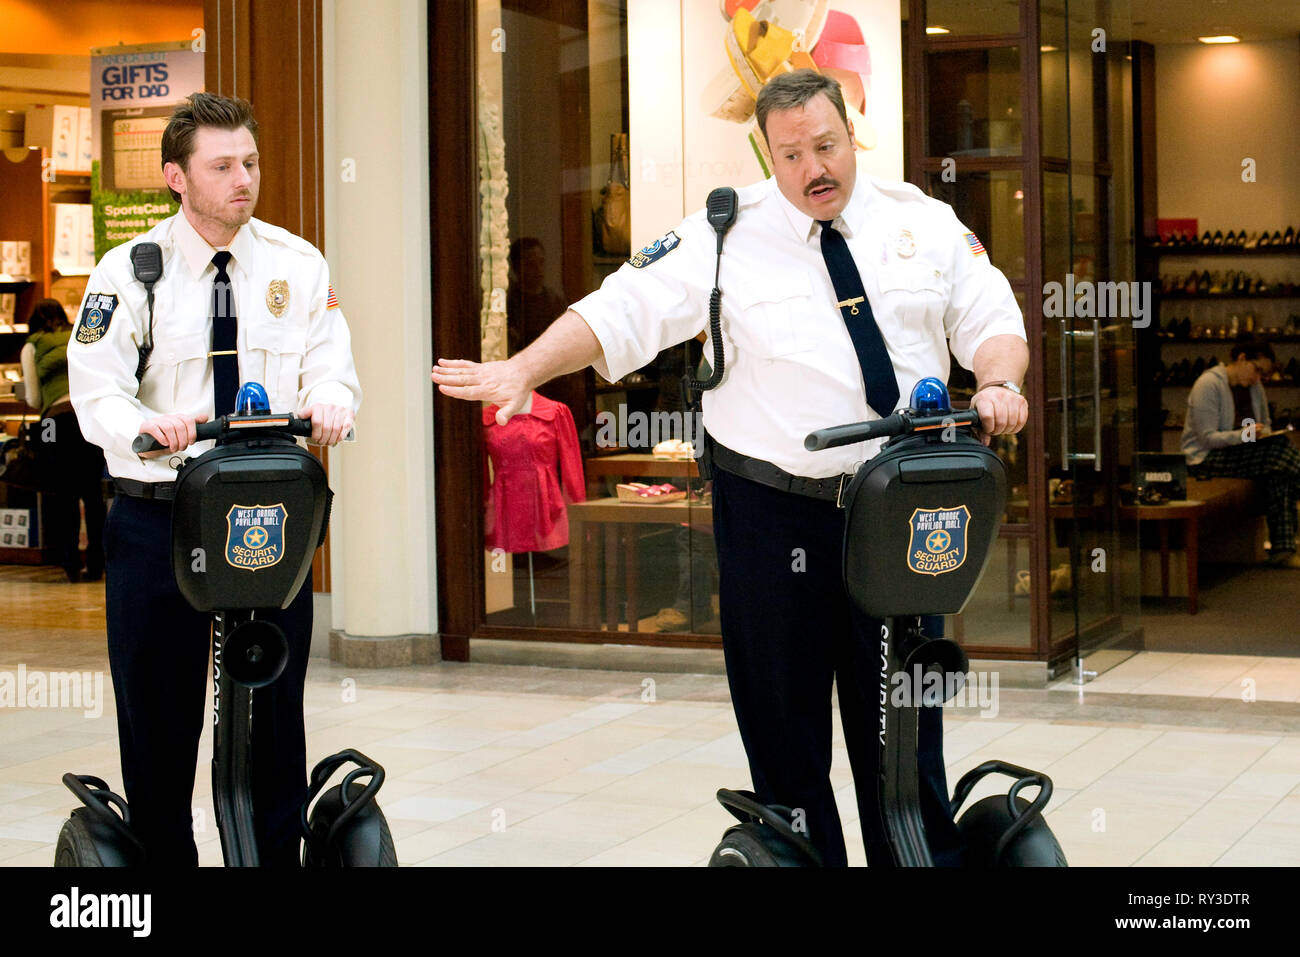 O'DONNELL,JAMES, PAUL BLART: MALL COP, 2009 - Stock Image